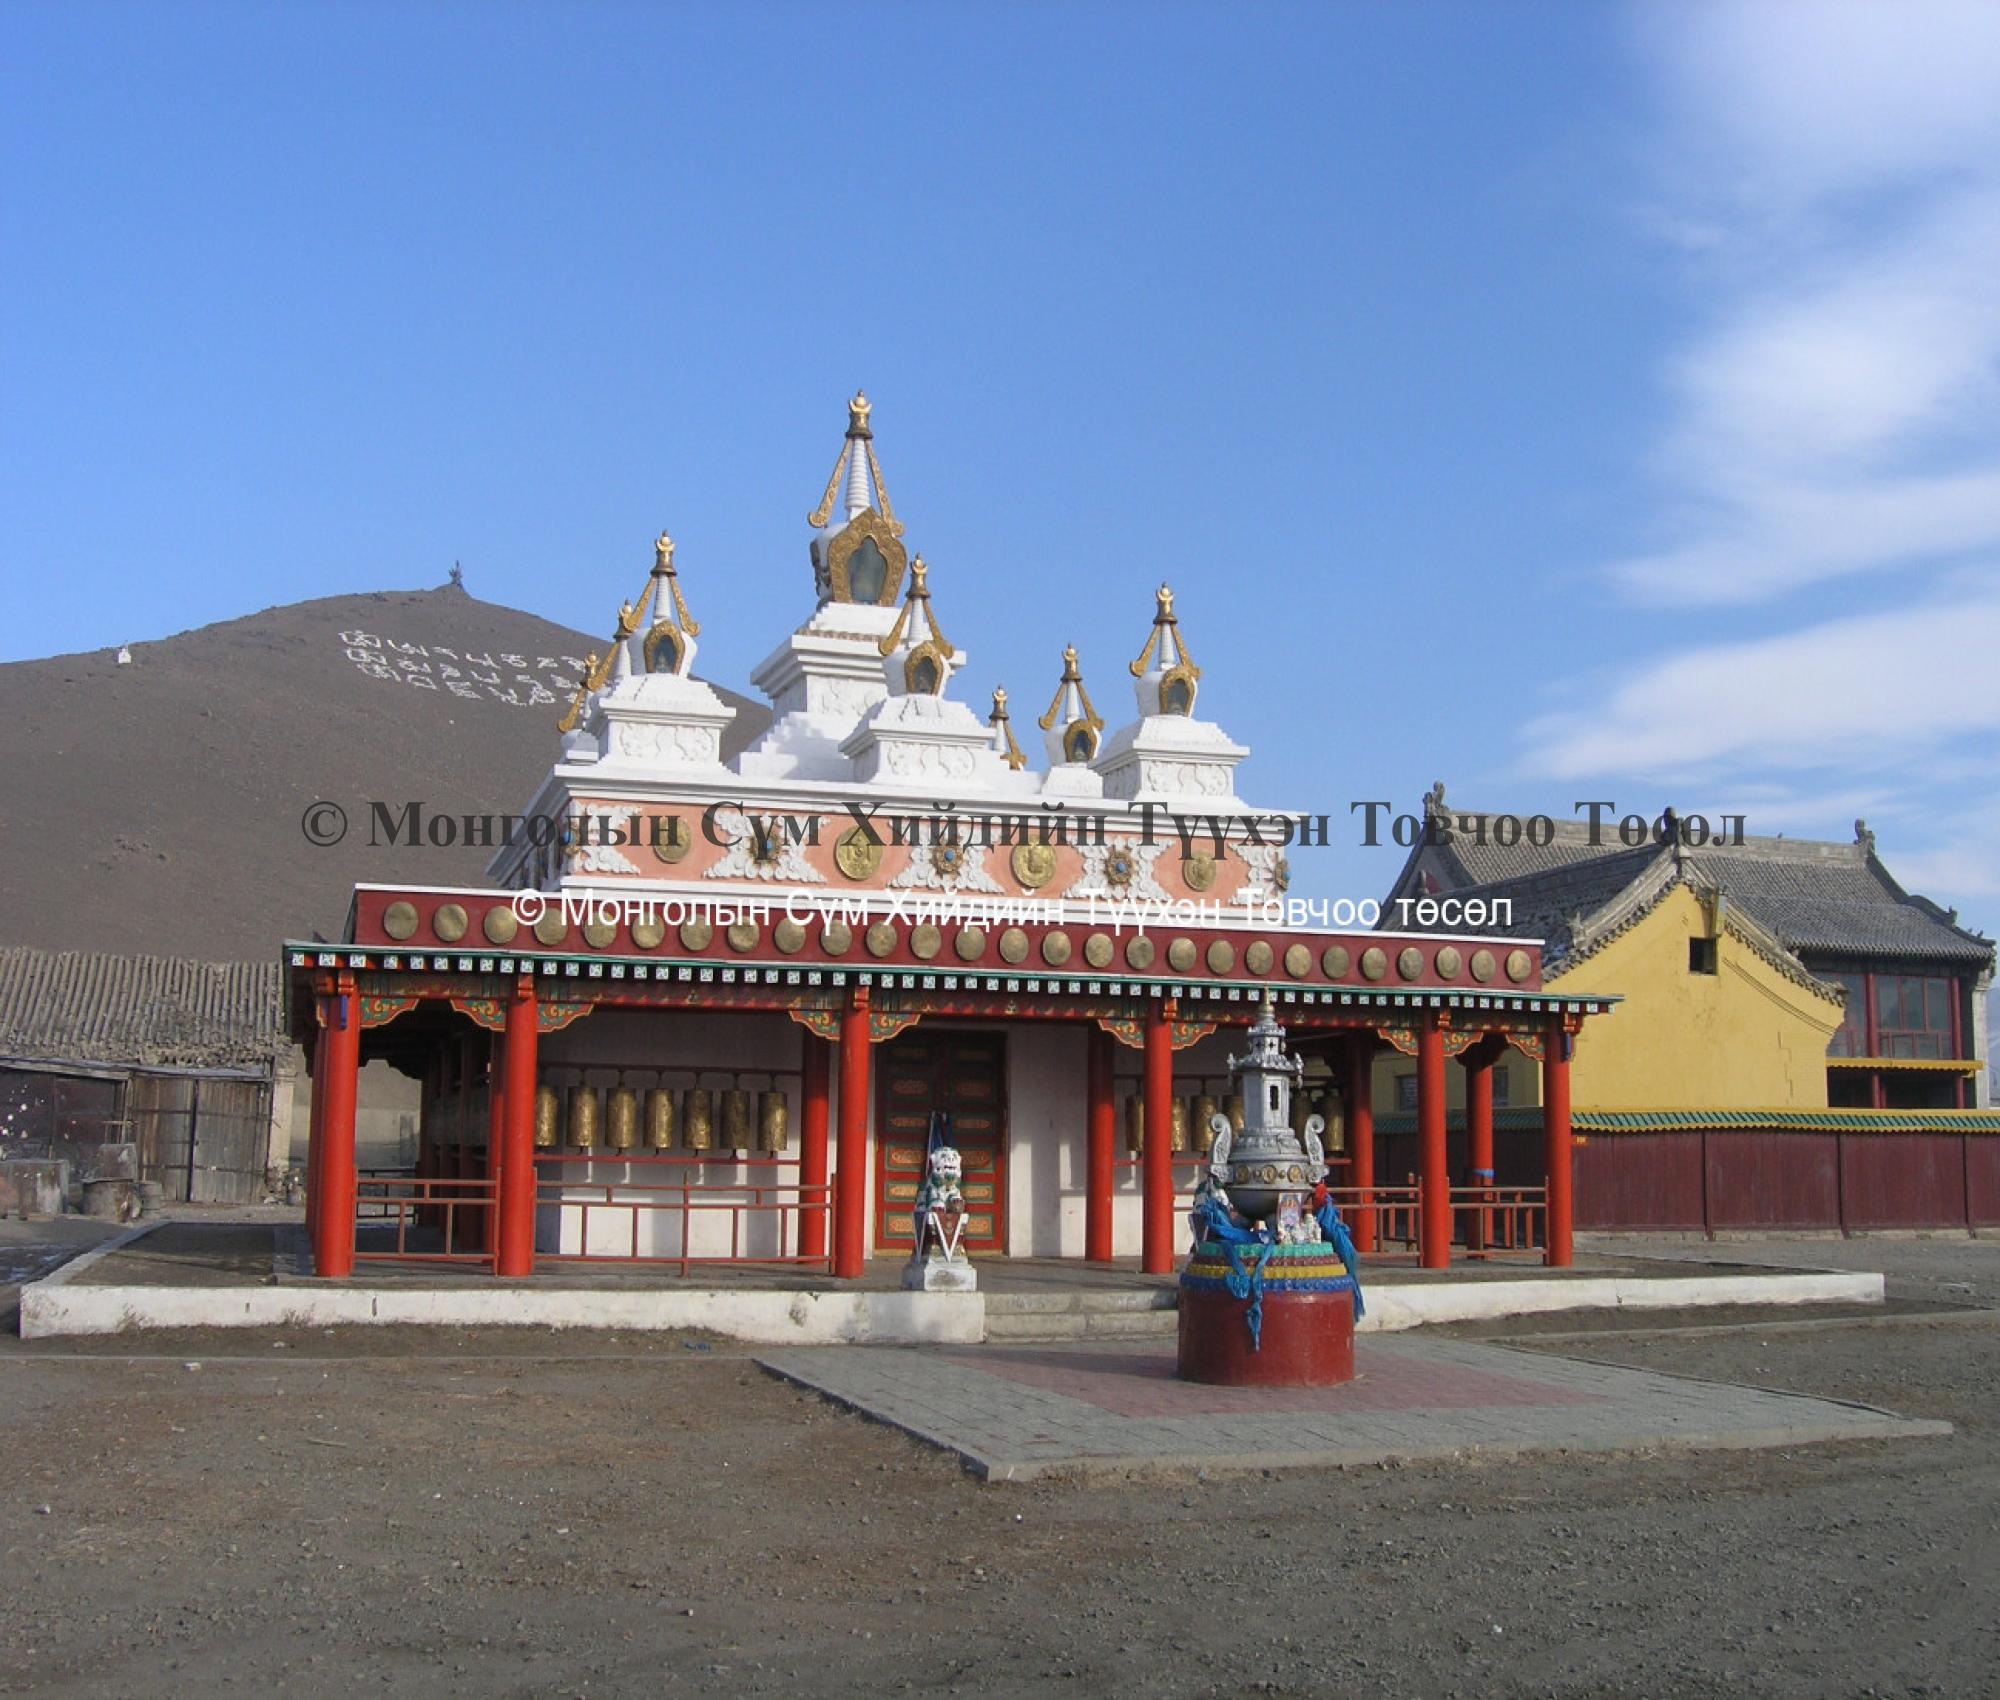 New square stupa built of the site of the ruins of